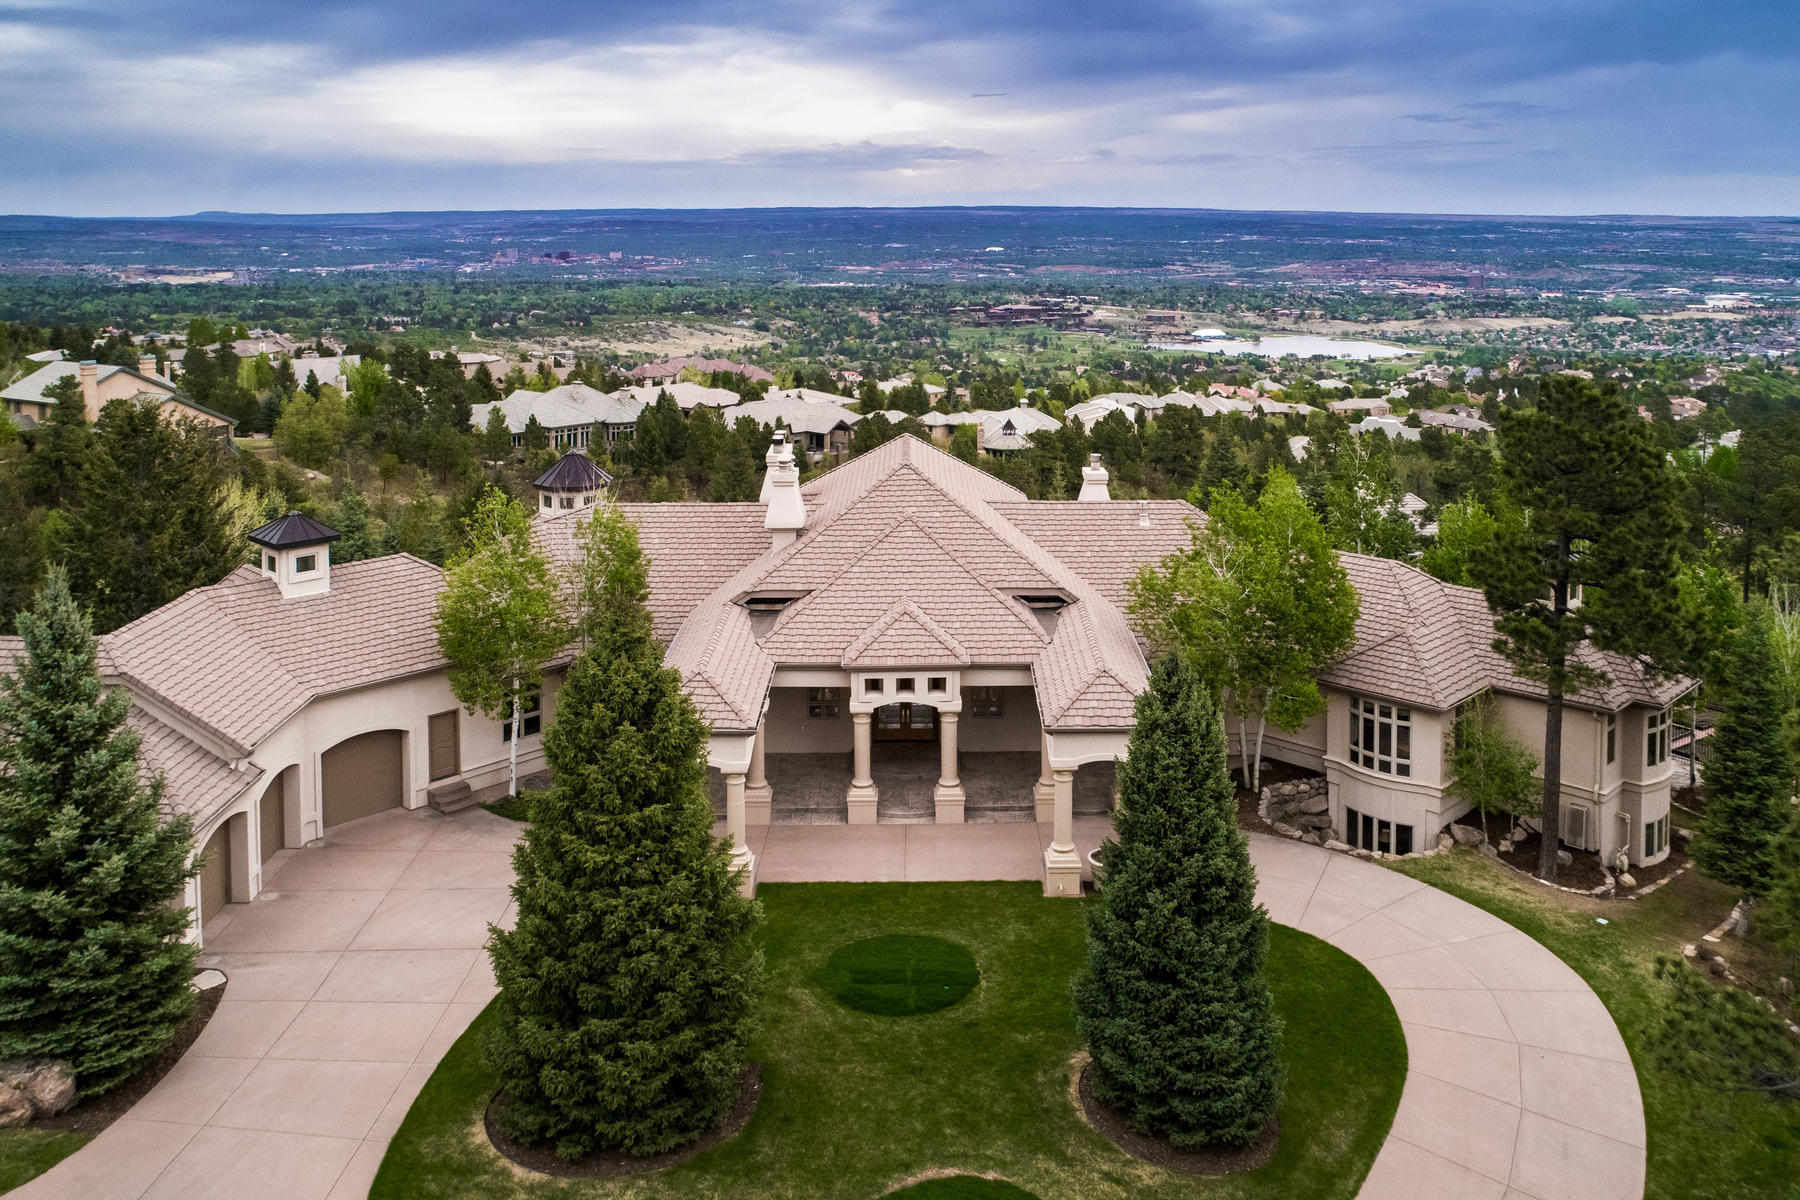 Single Family Home for Active at This truly spectacular home sits on over 2 acres and affords panoramic views! 4915 Canyon Meadows Vw Colorado Springs, Colorado 80906 United States